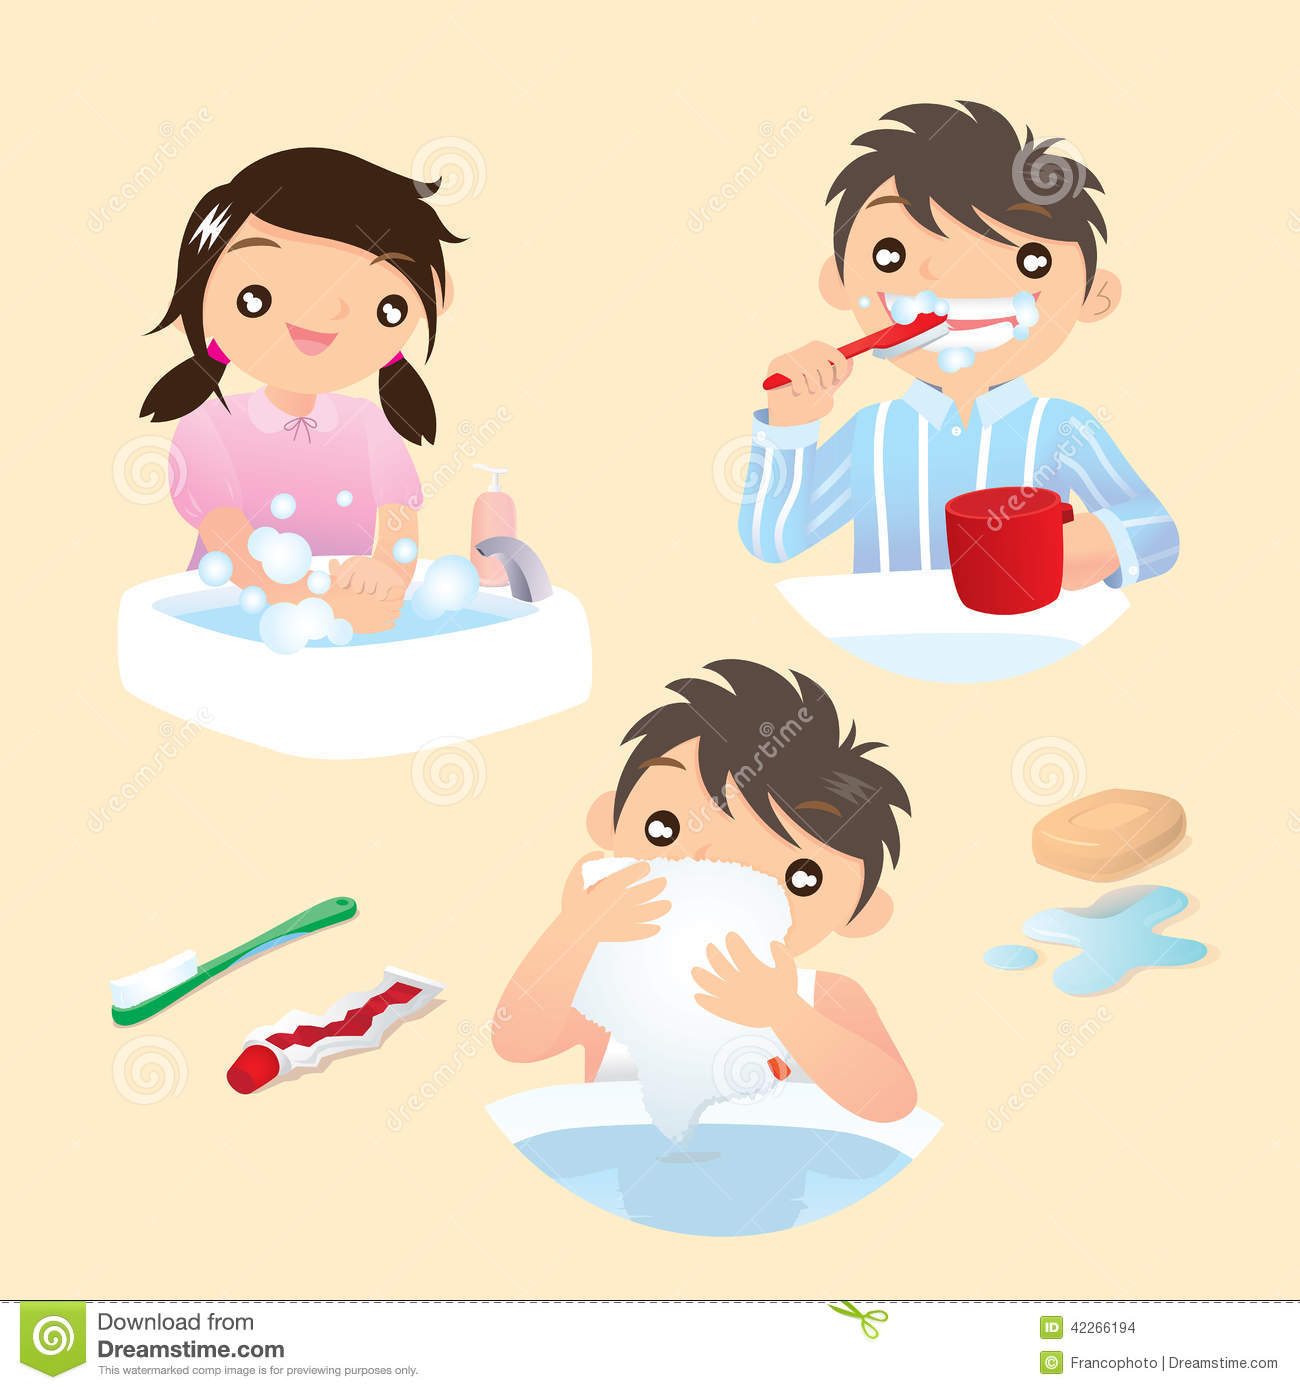 Boy brush teeth and wash face clipart.